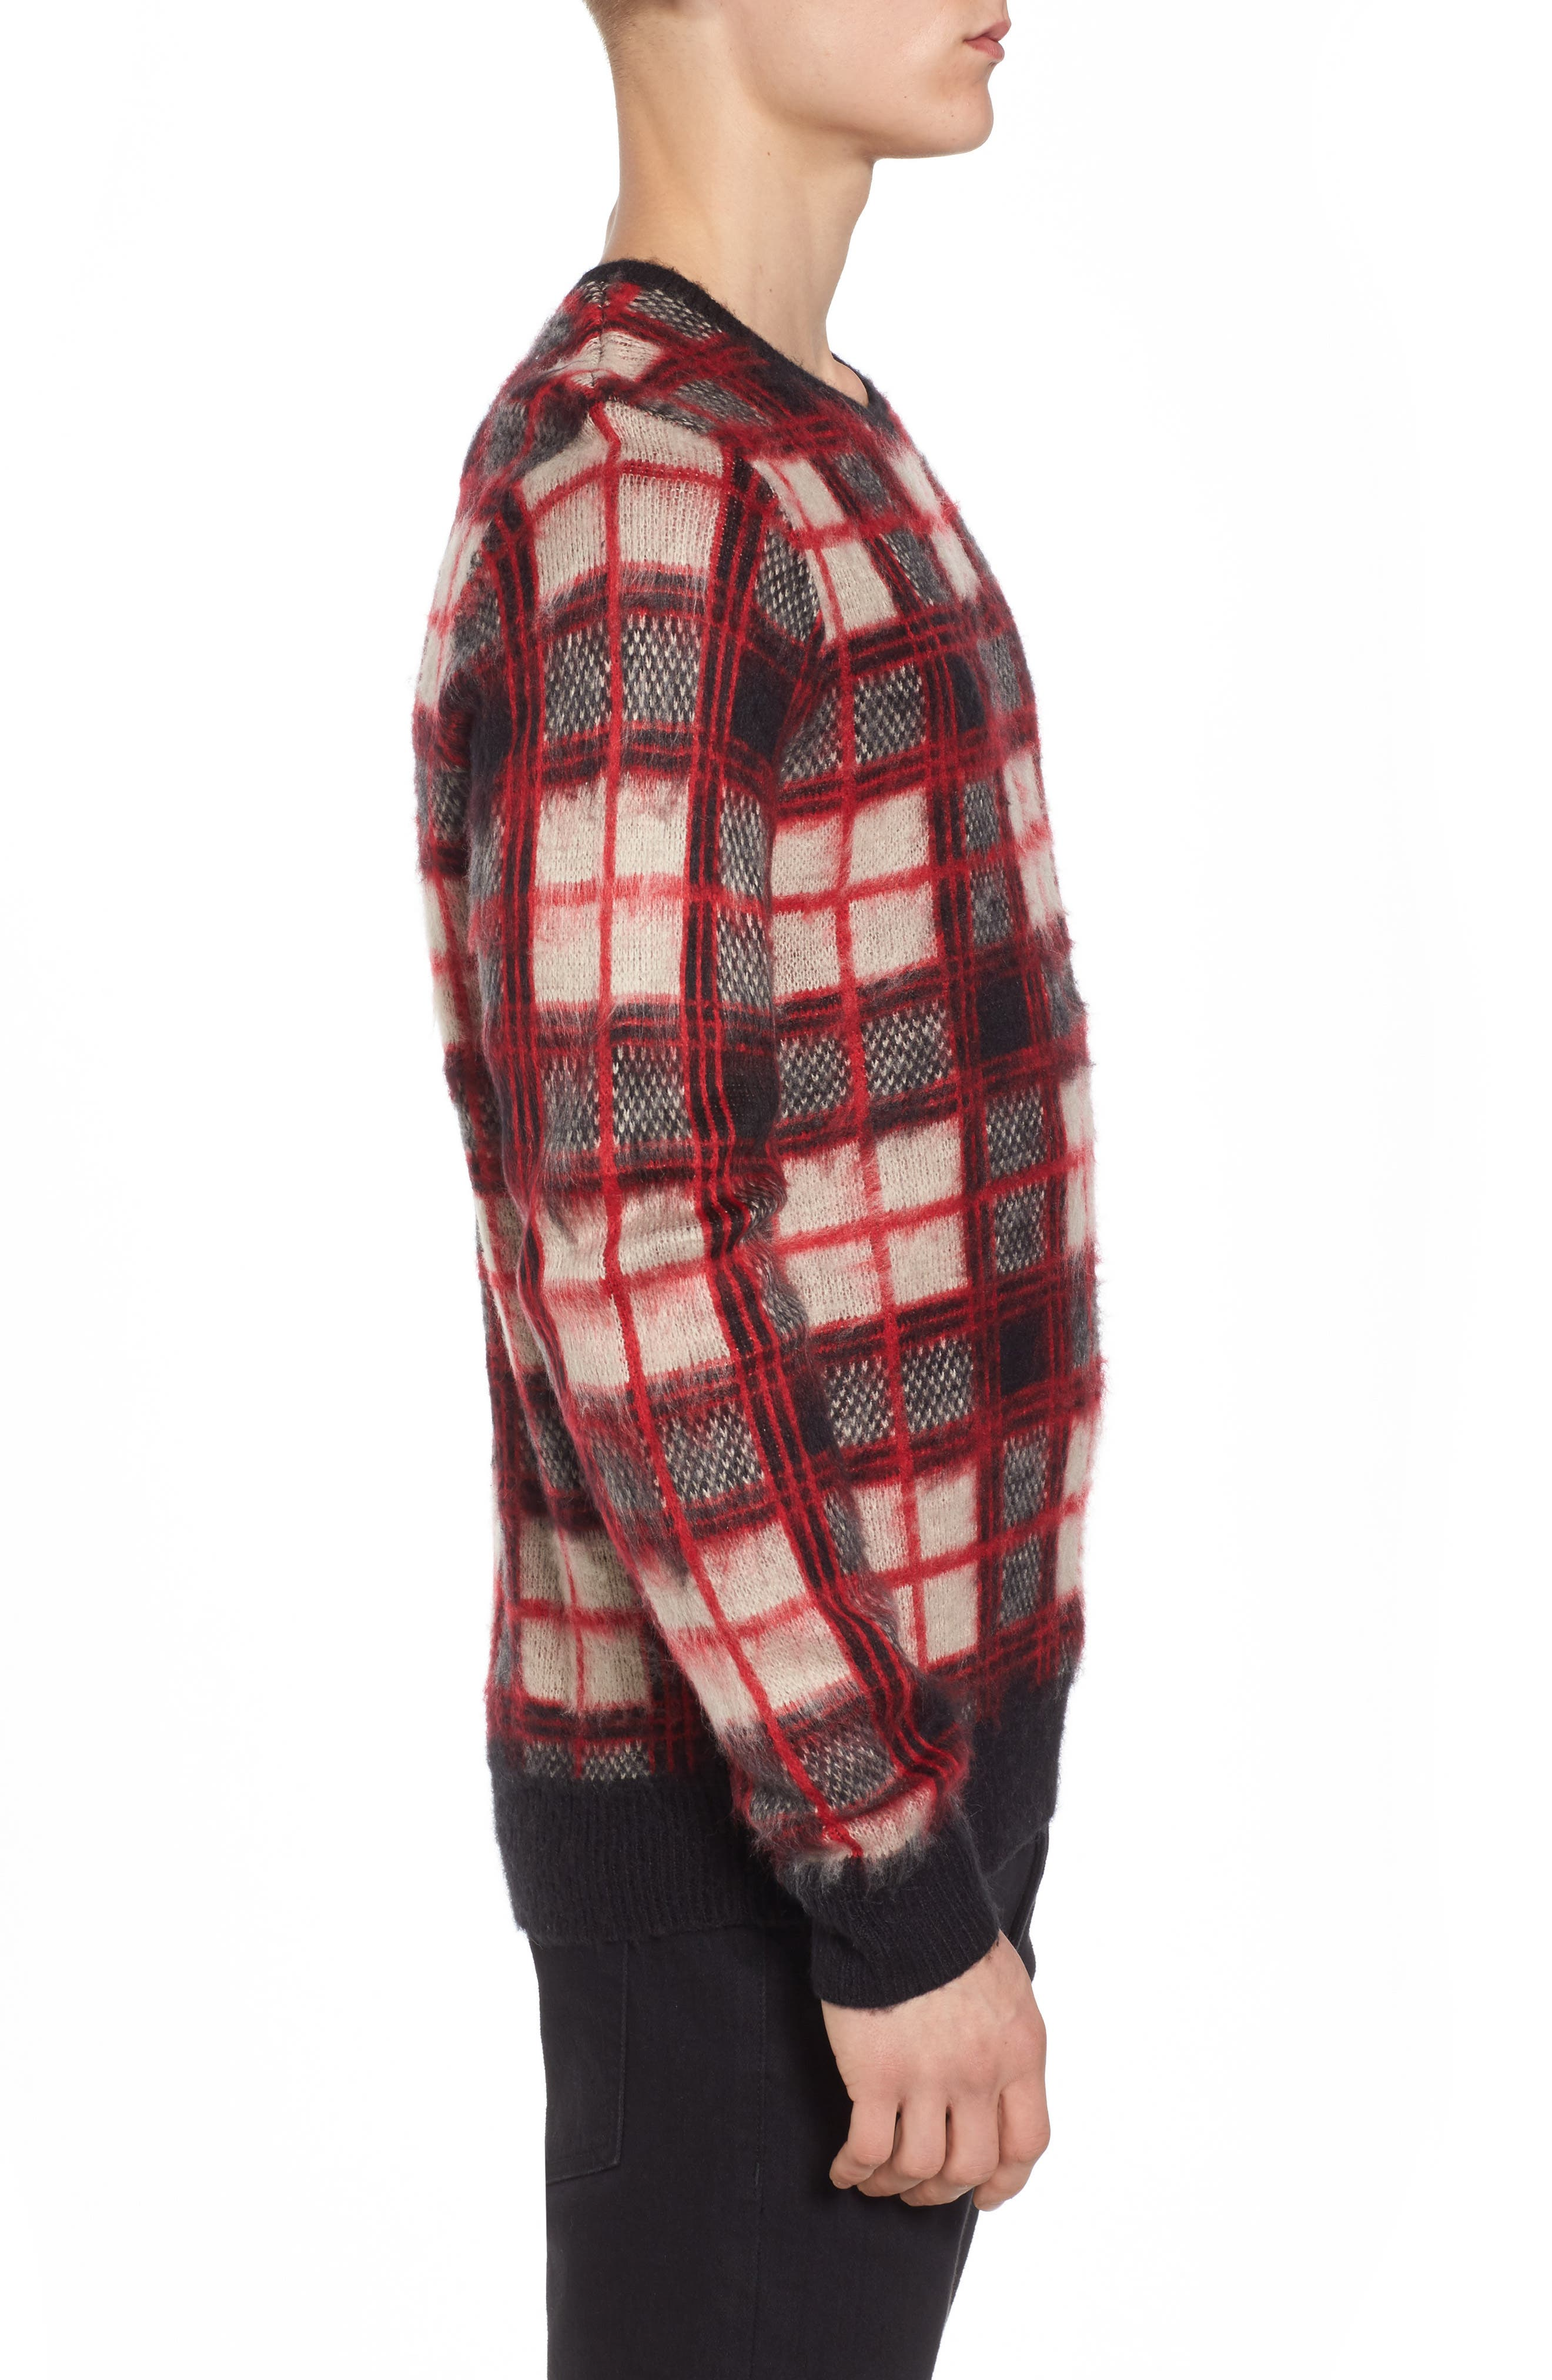 Fuzzy Plaid Sweater,                             Alternate thumbnail 3, color,                             Red Chili- Grey Plaid